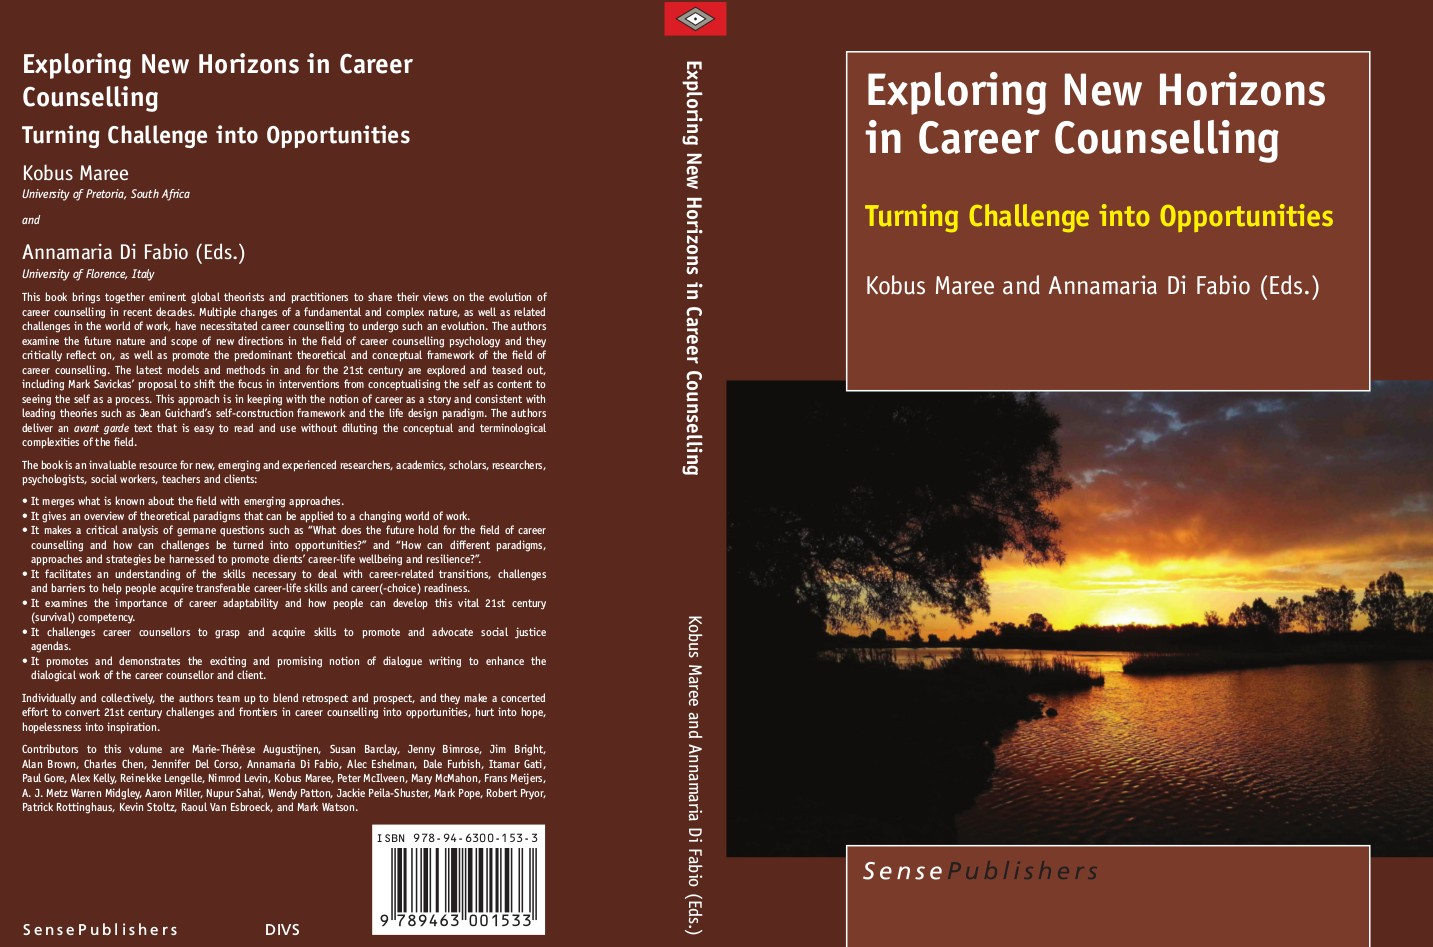 Exploring New Horizons In Career Counselling